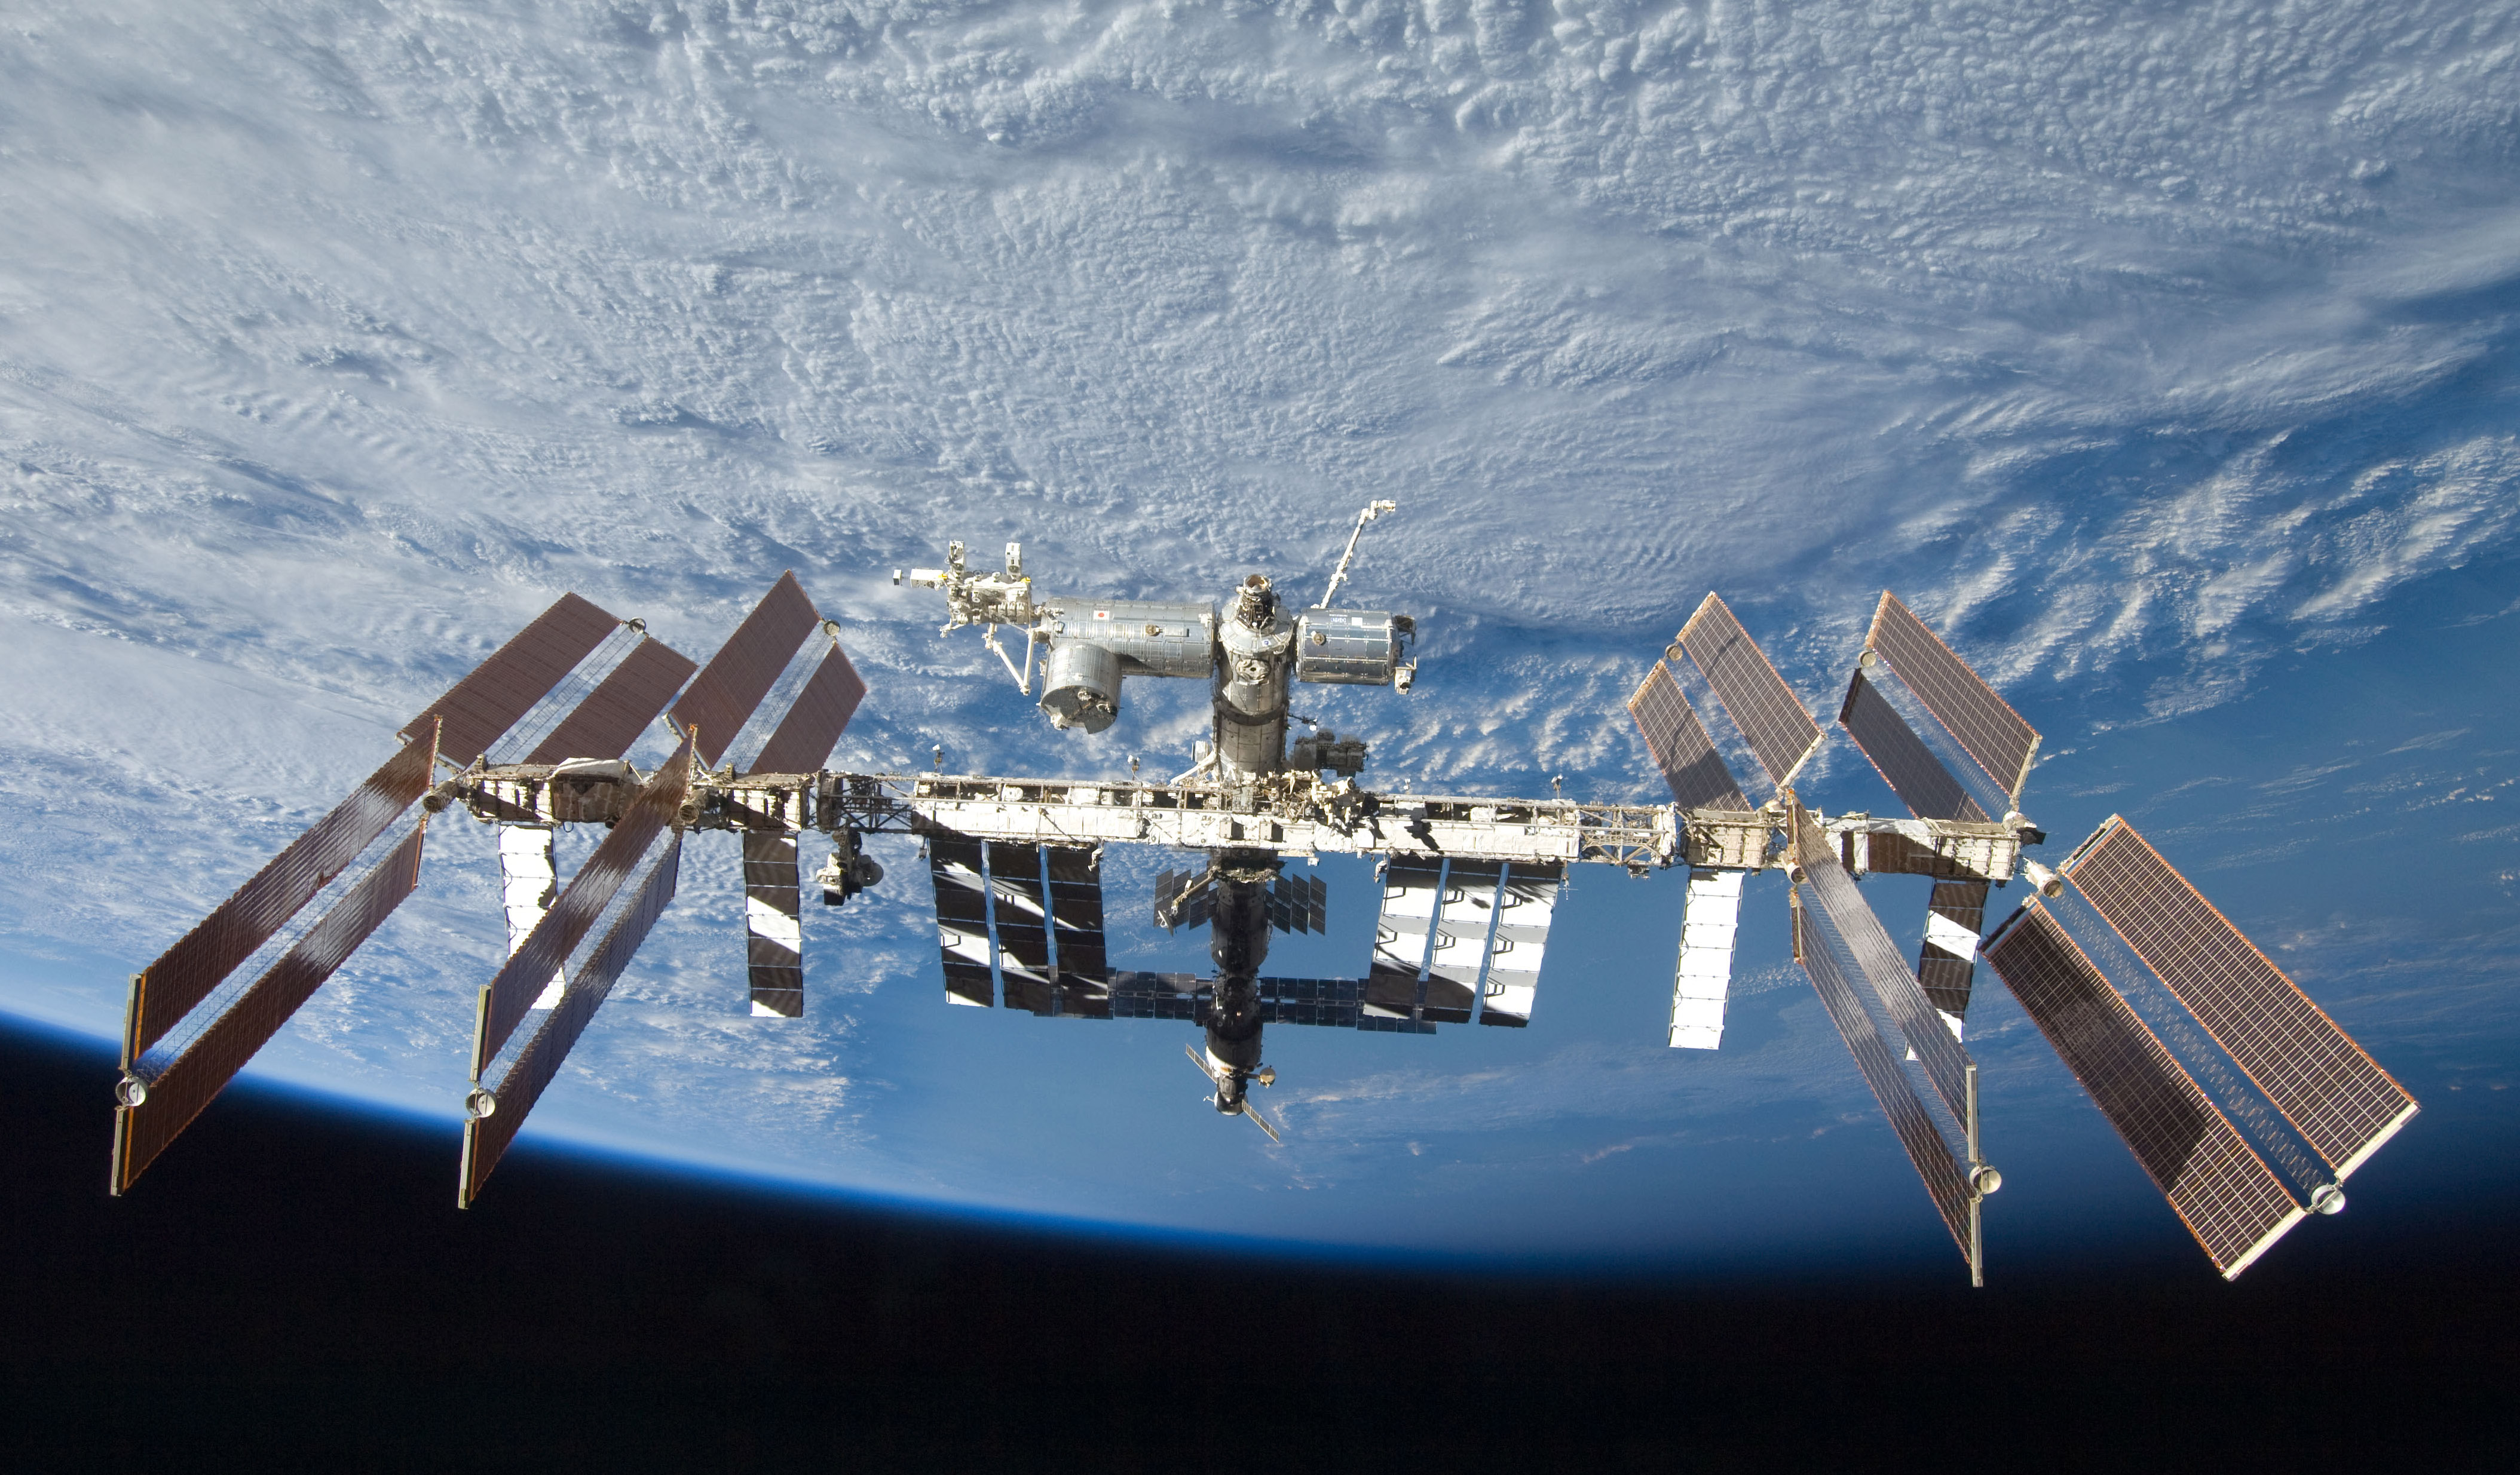 us space station viewing - photo #27